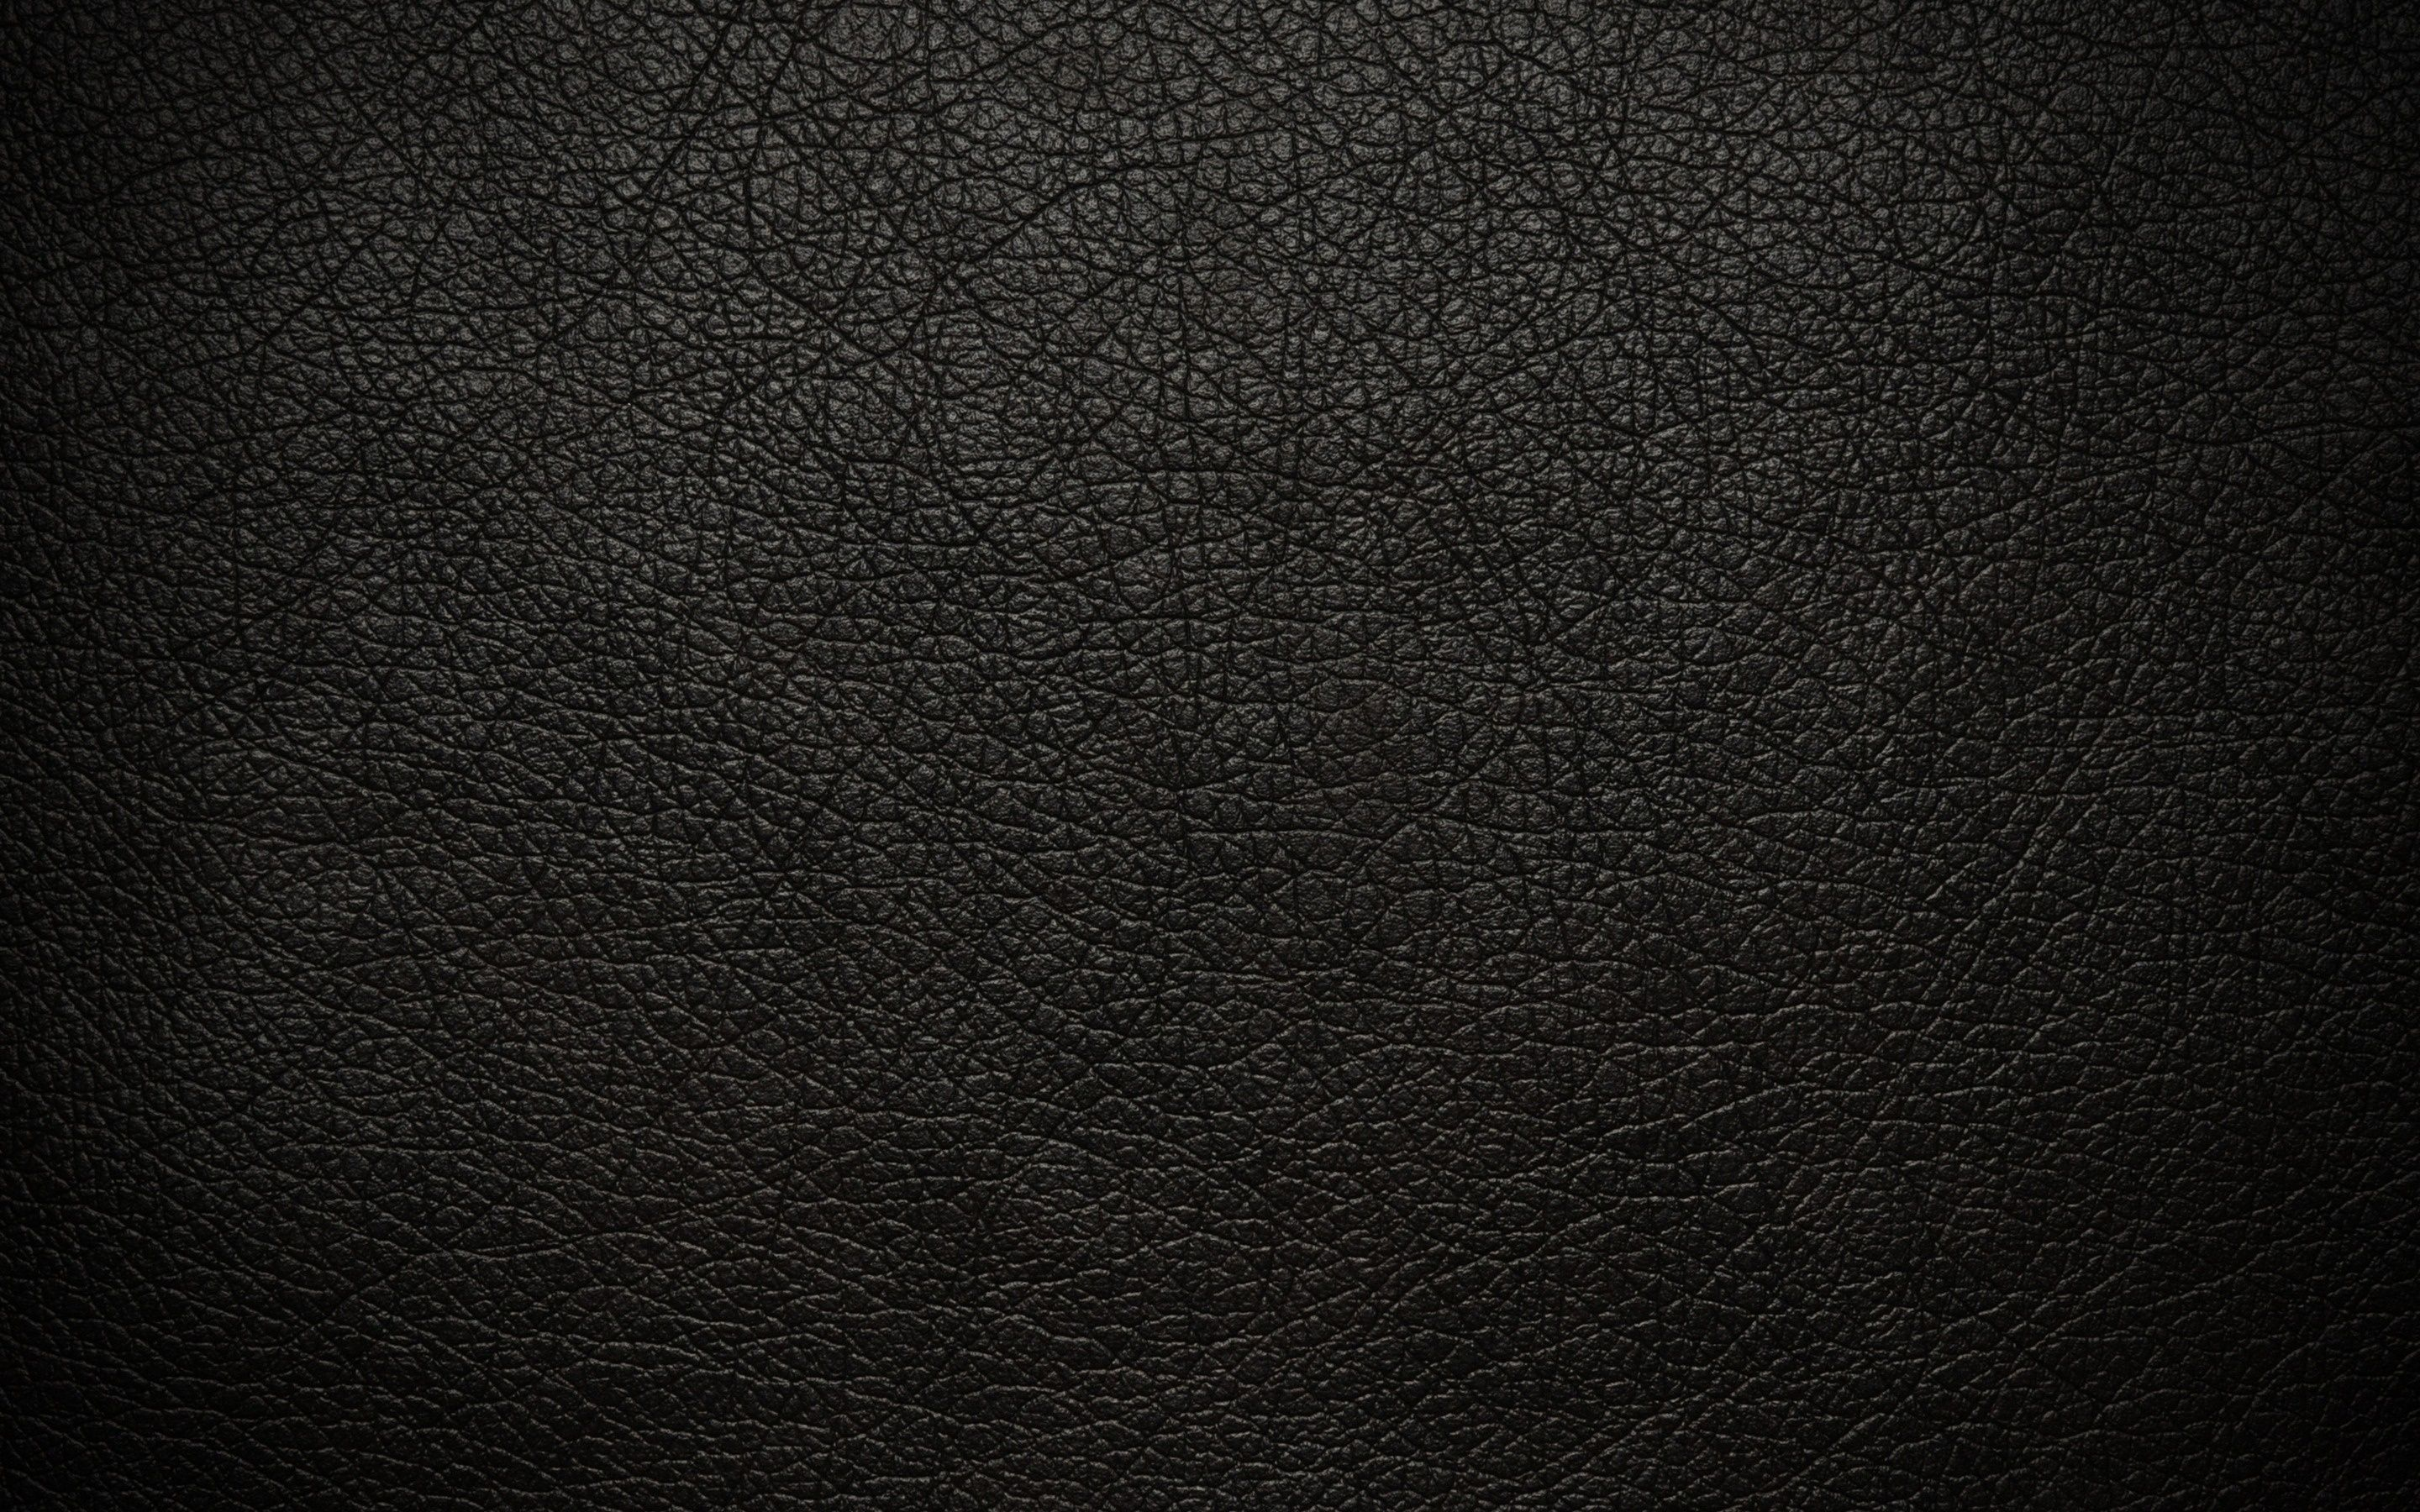 404 Page not found Leather texture, Photo texture